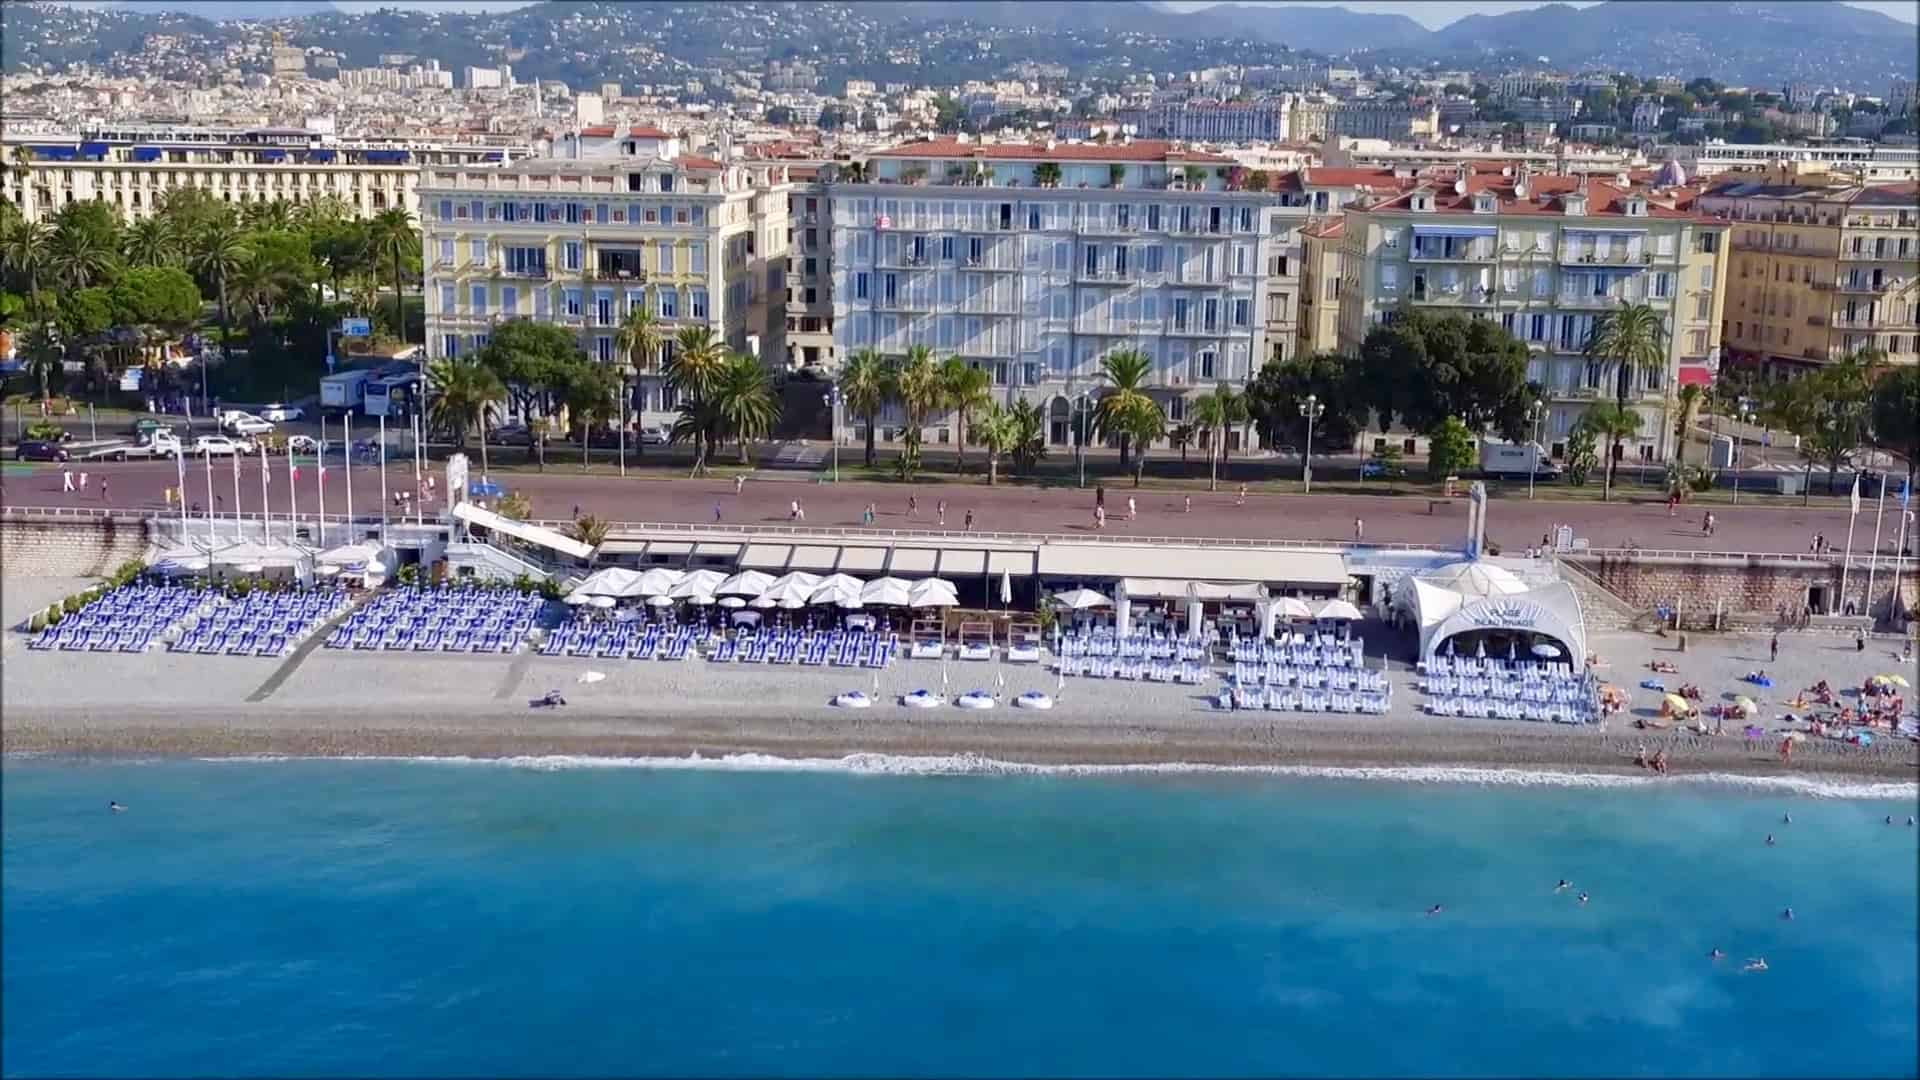 Plage Beau Rivage Nice aerial view